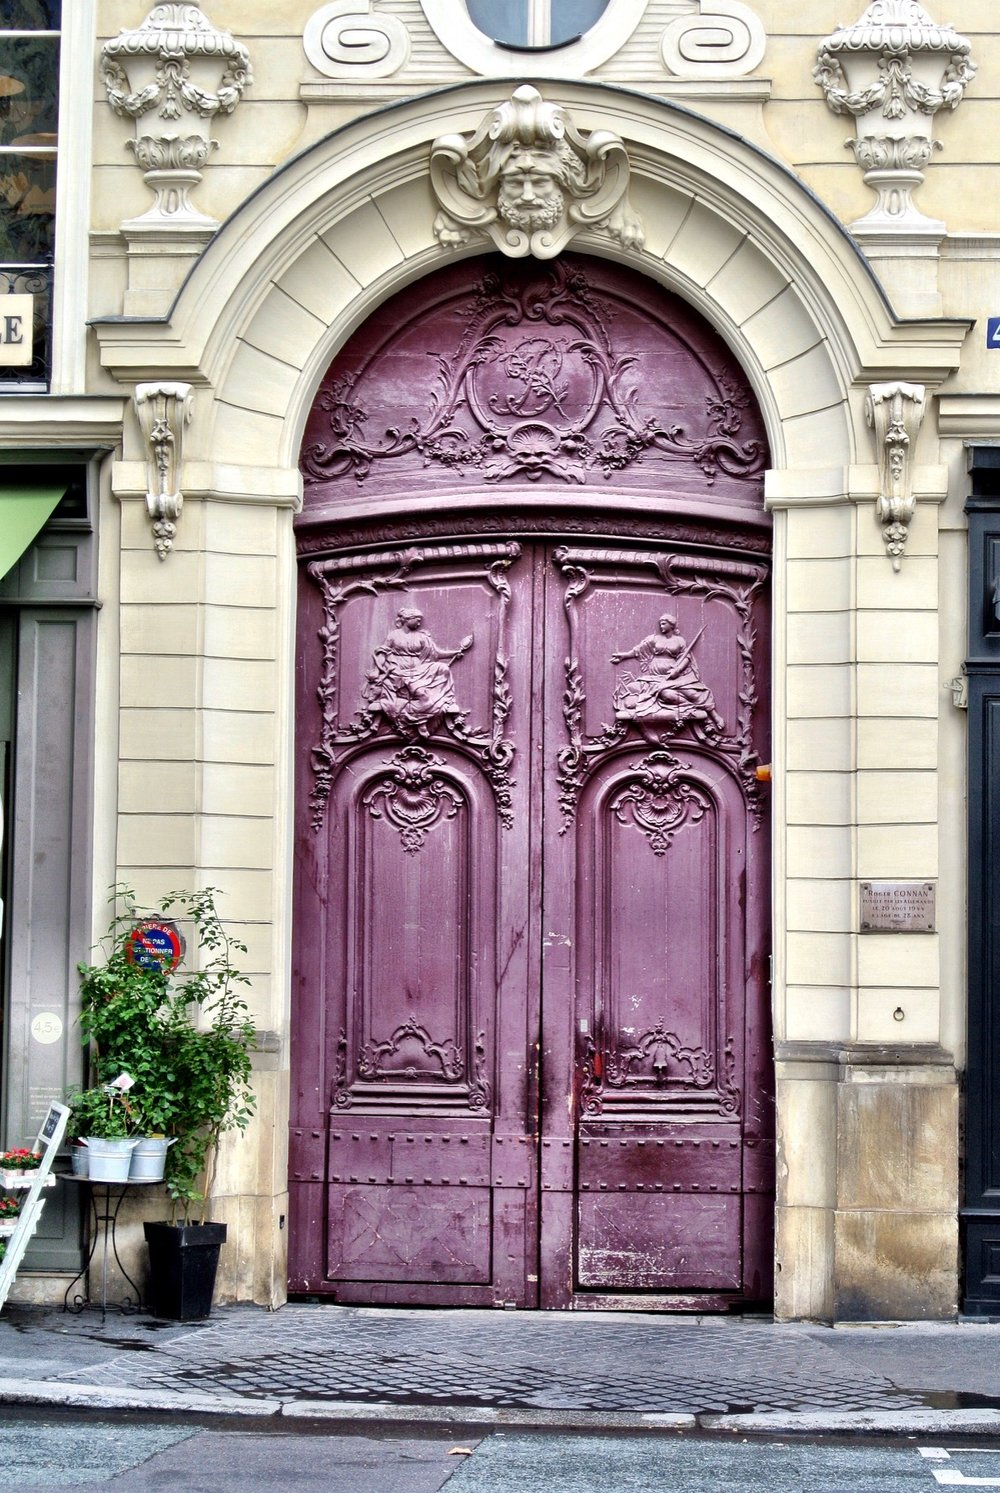 While doors are lovely and all Duke and I much prefer to take photos of the stray cats found throughout a city. Theyu0027ve got more personality. u2013Wally & Les Portes de Paris u2013 Paris Doors u2014 The Not So Innocents Abroad